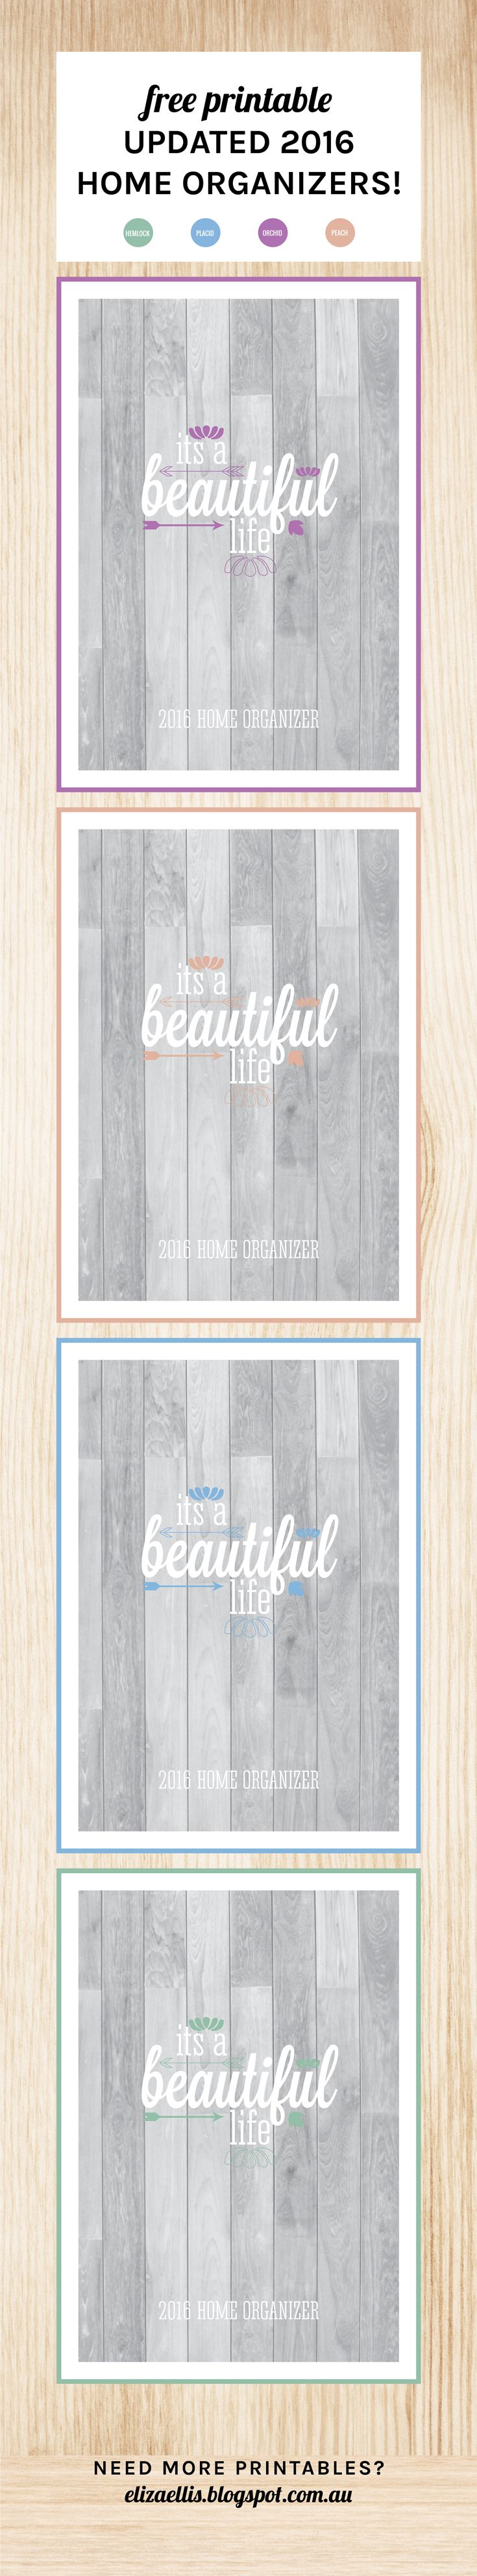 Free Printable 2016 Home Organizer Covers by Eliza Ellis. Available in 4 colors. Check out my blog for loads more planners, diaries, calendars and organizers!